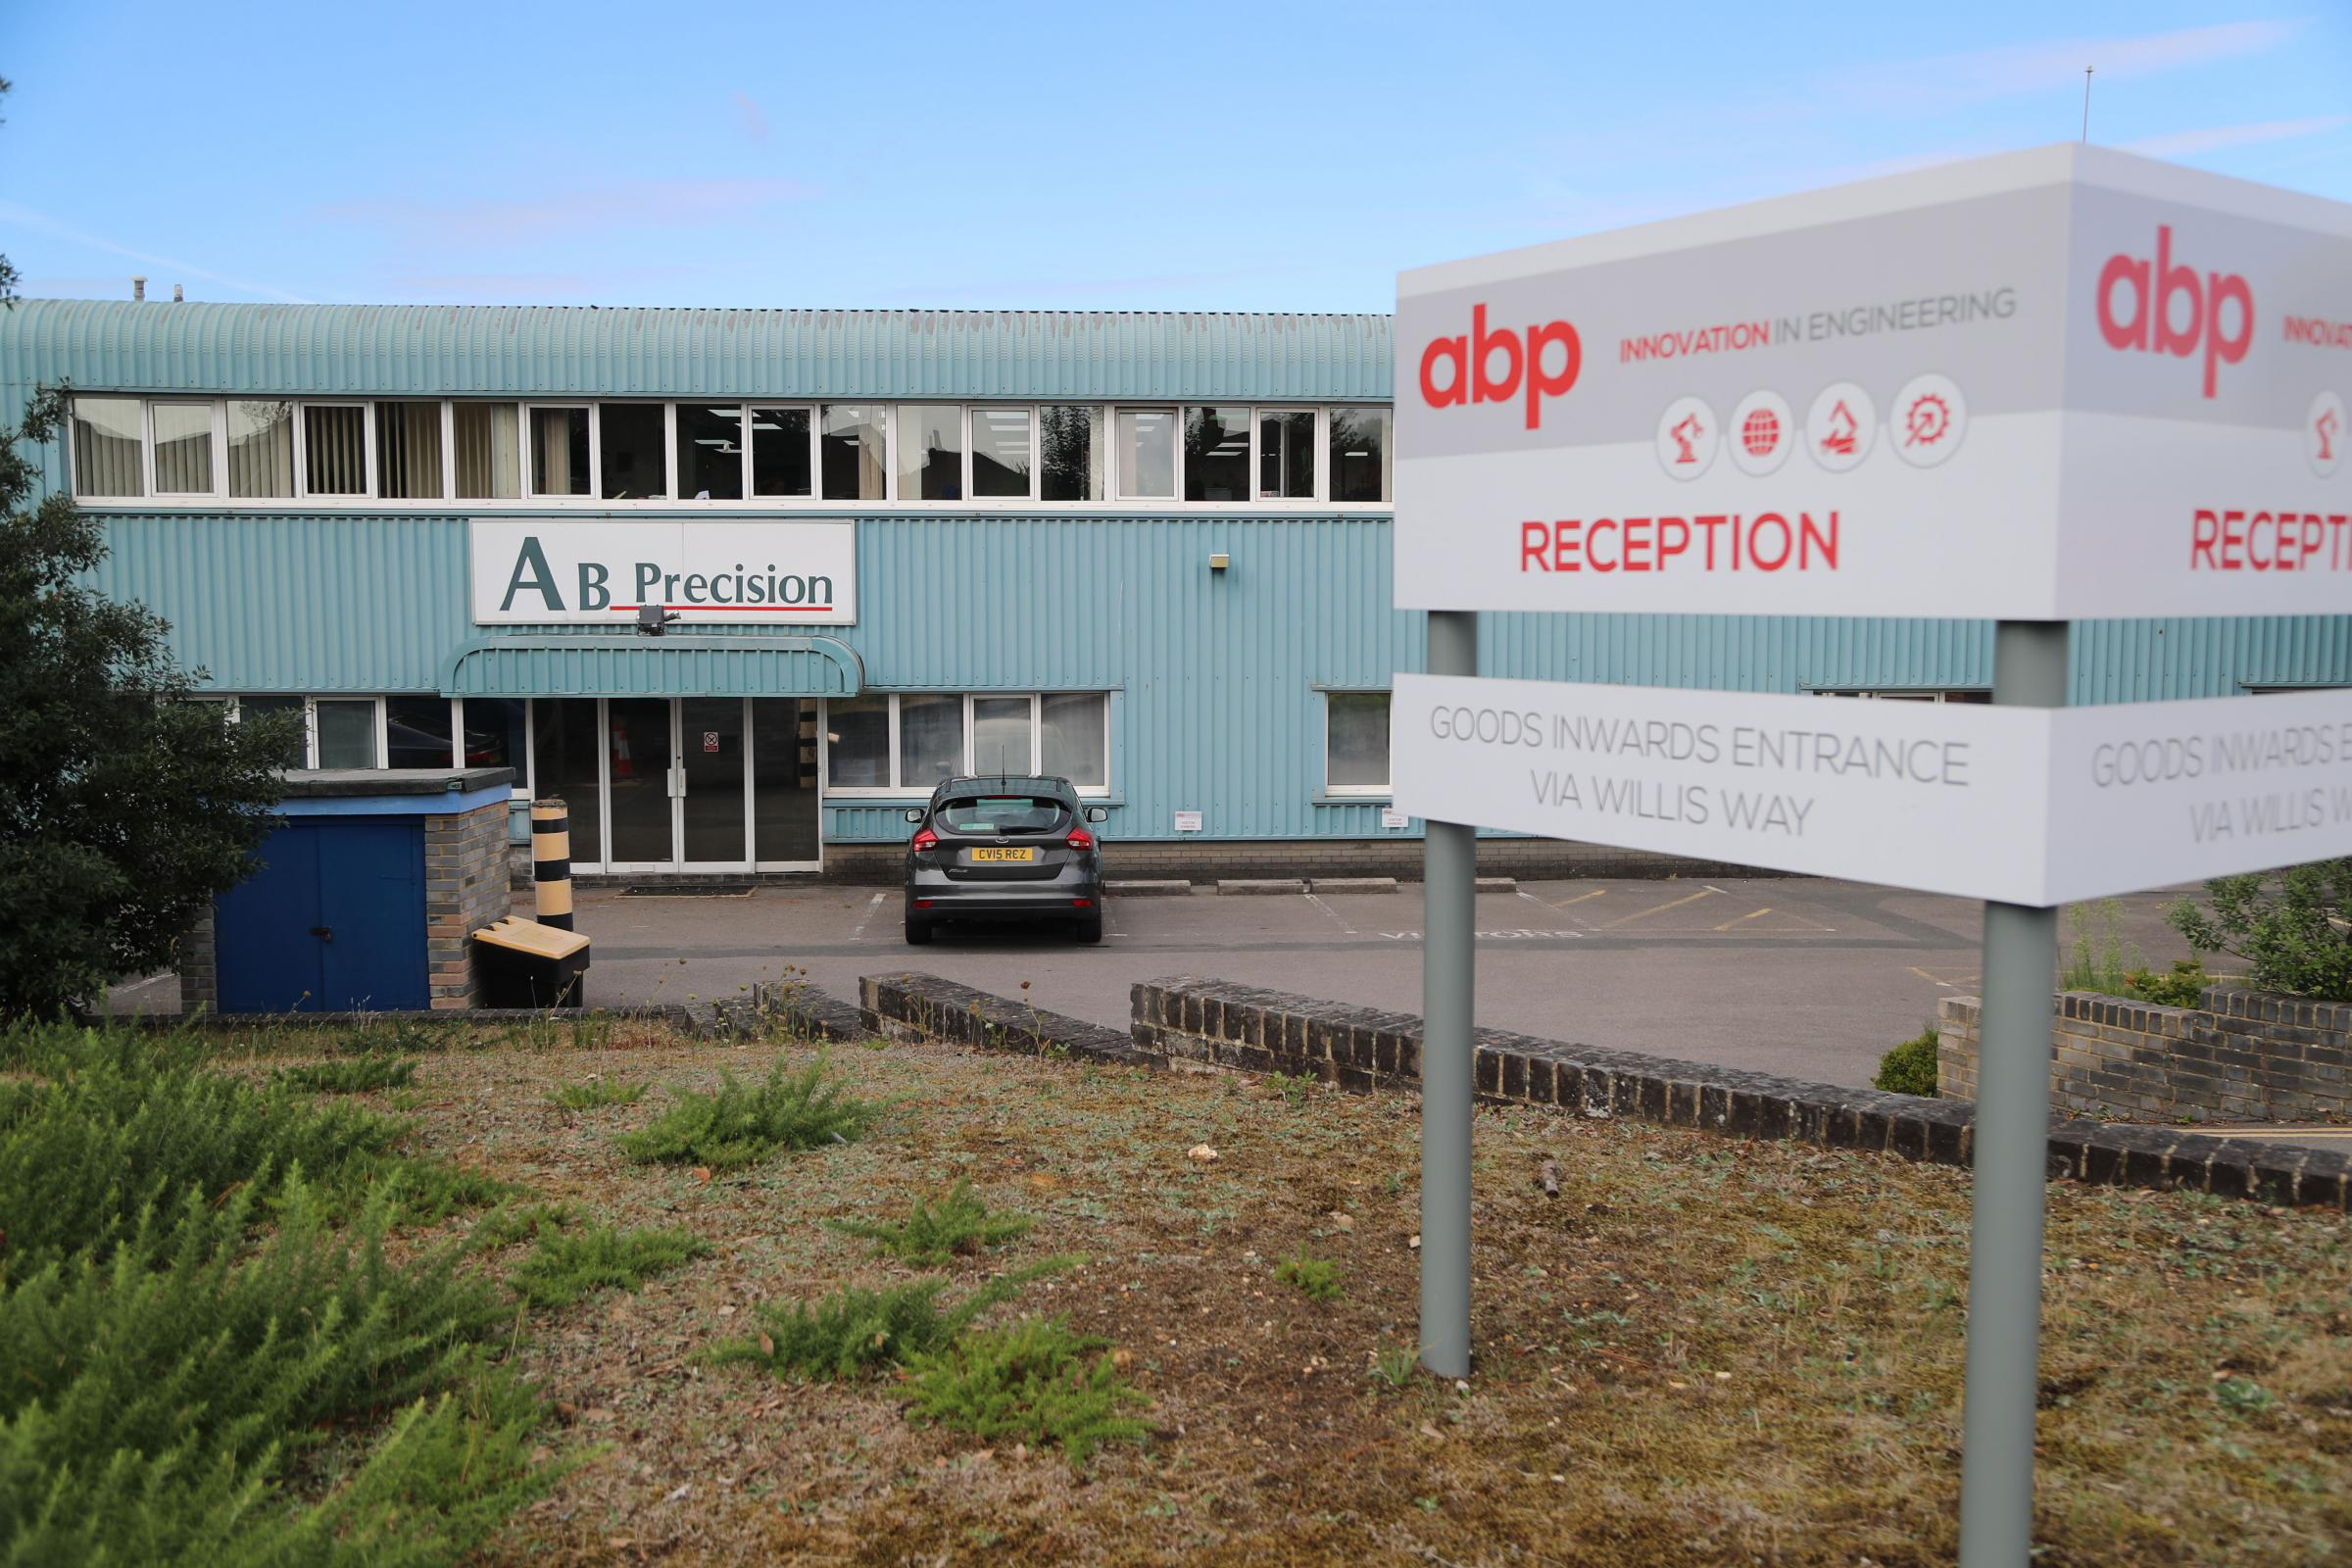 AB Precision at Fleets Lane in Poole